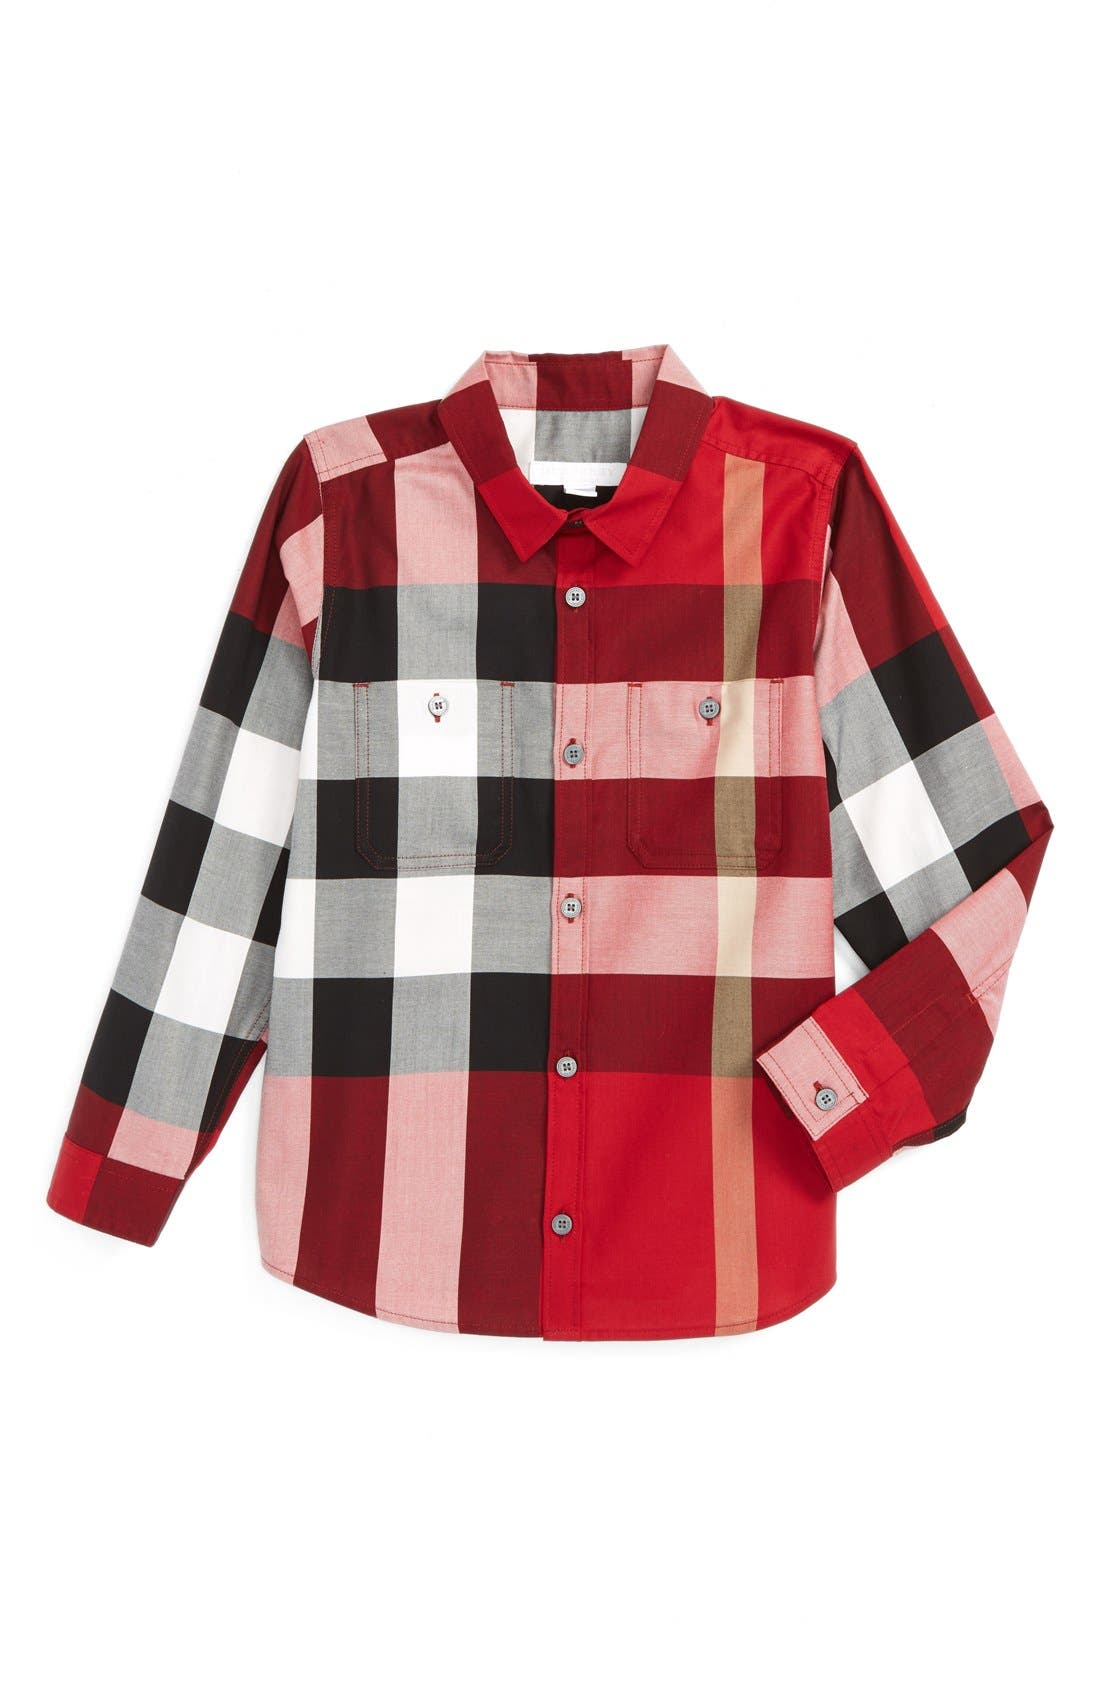 Alternate Image 1 Selected - Burberry 'Mini Camber' Check Long Sleeve Shirt (Toddler Boys, Little Boys & Big Boys)